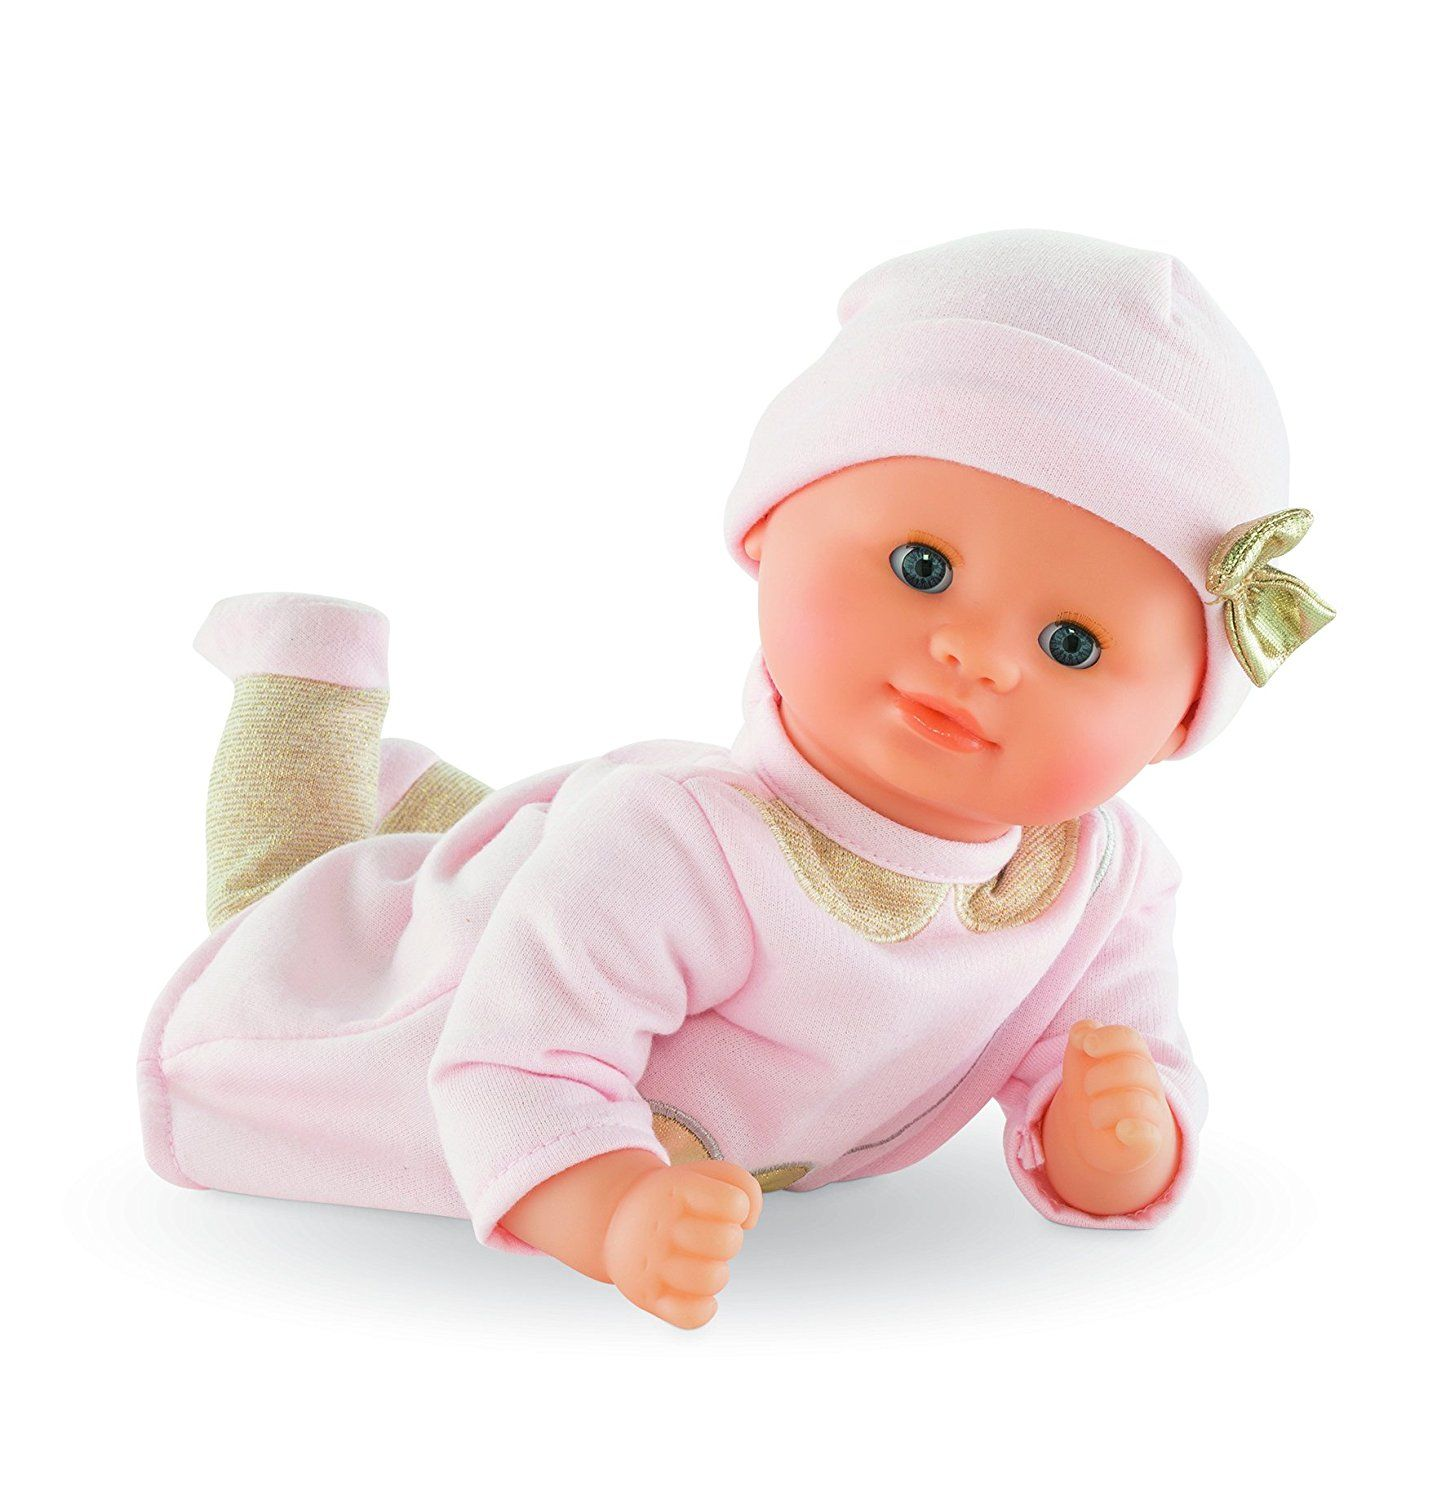 Mon Premier Bebe Calin Sparkling Cloud Play Doll by Corolle (FBM72) by Corolle